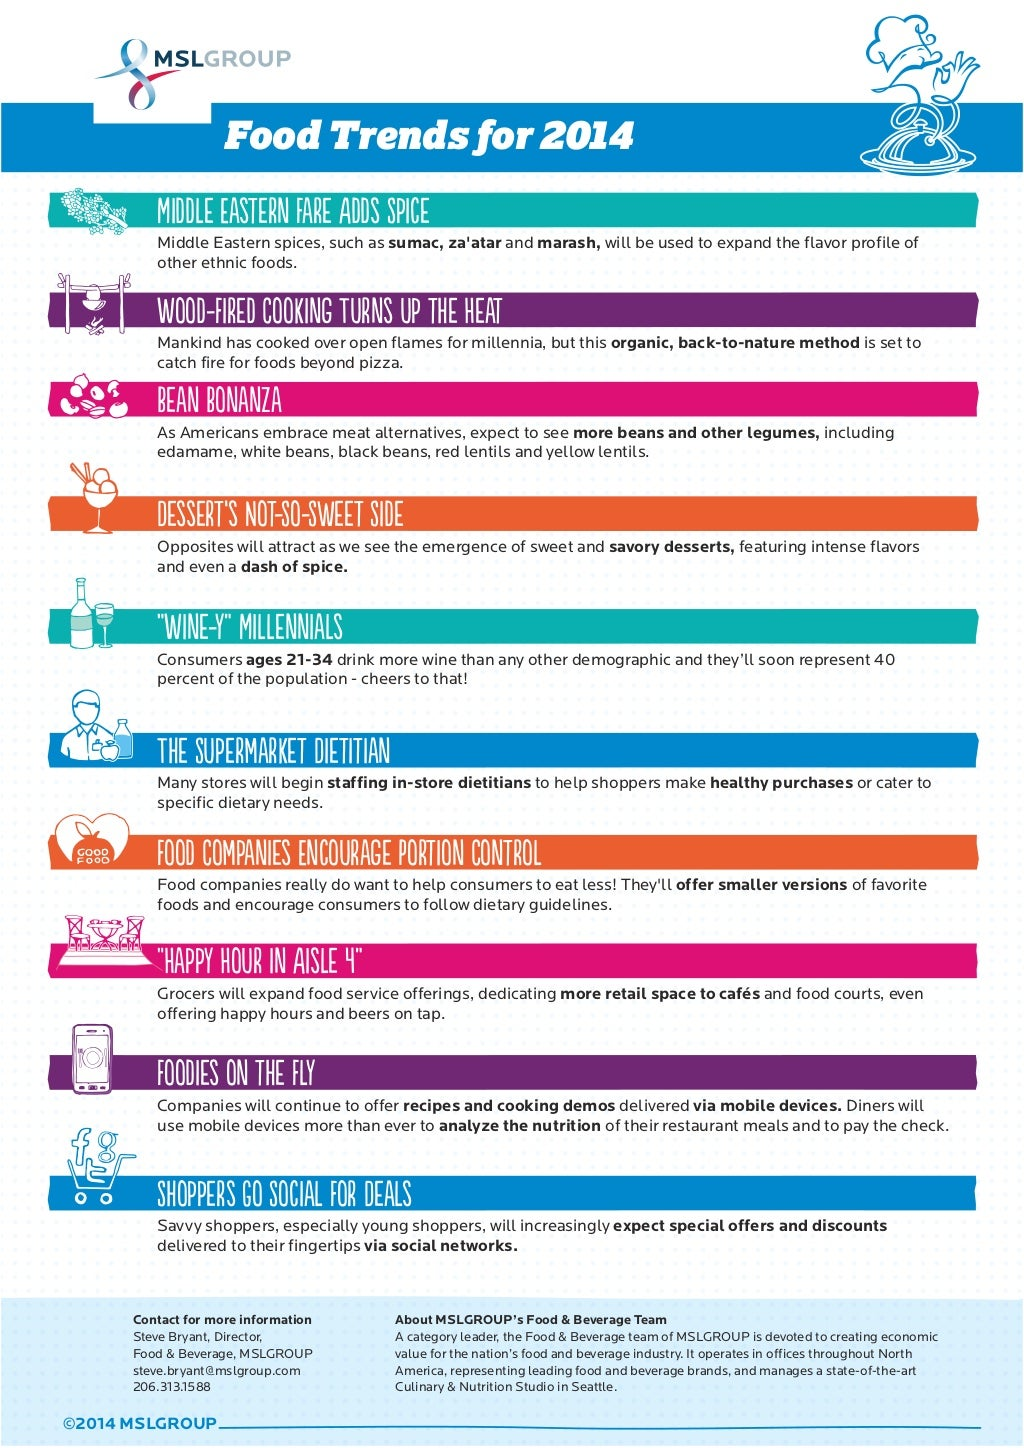 Food & Beverage Trends for 2014 - Infographic